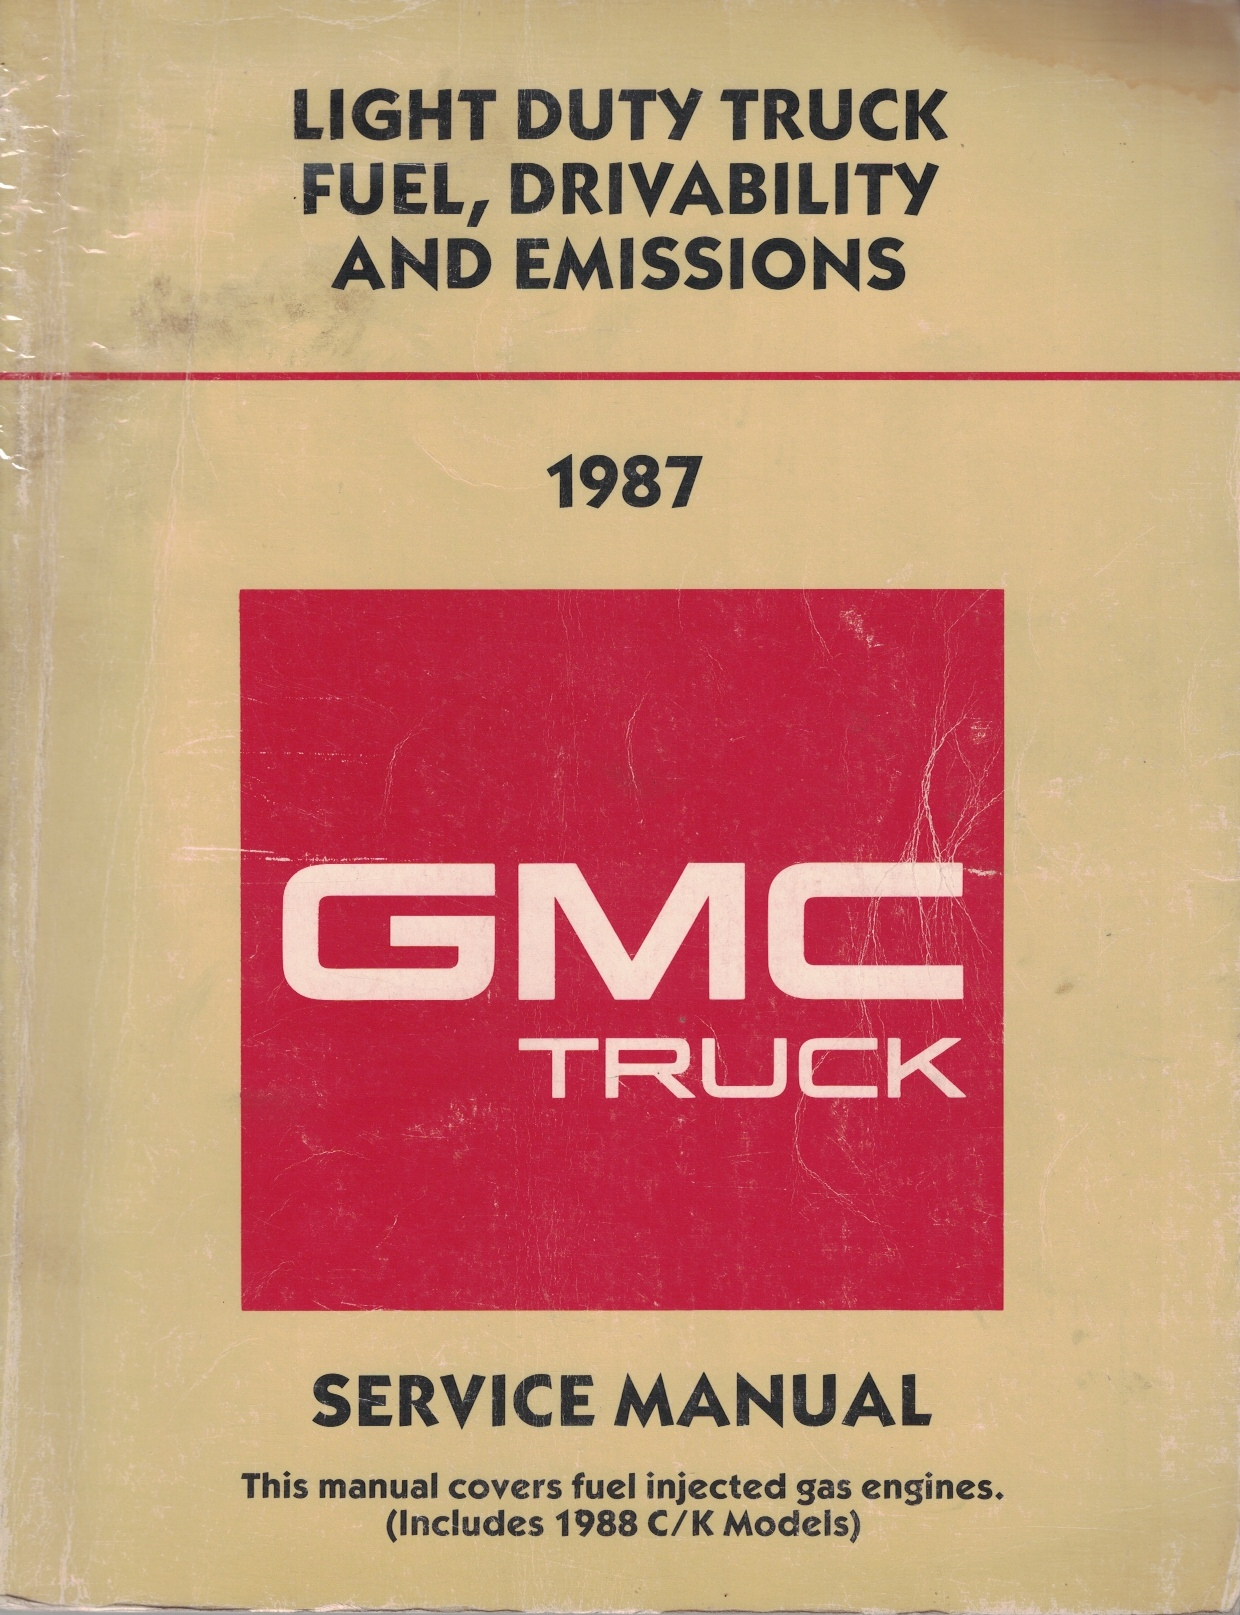 Image for 1987 GMC Light Duty Truck Fuel and Emissions Service Manual for Gasoline Engines with Throttle Body Injection C,K,P,R,V,S,T Truck and M-Van, G-Van Models 10/1500 - 20/2500 - 30/3500 Series (Includes 1988 C/K Models)] [Fuel, Drivability and Emissions]